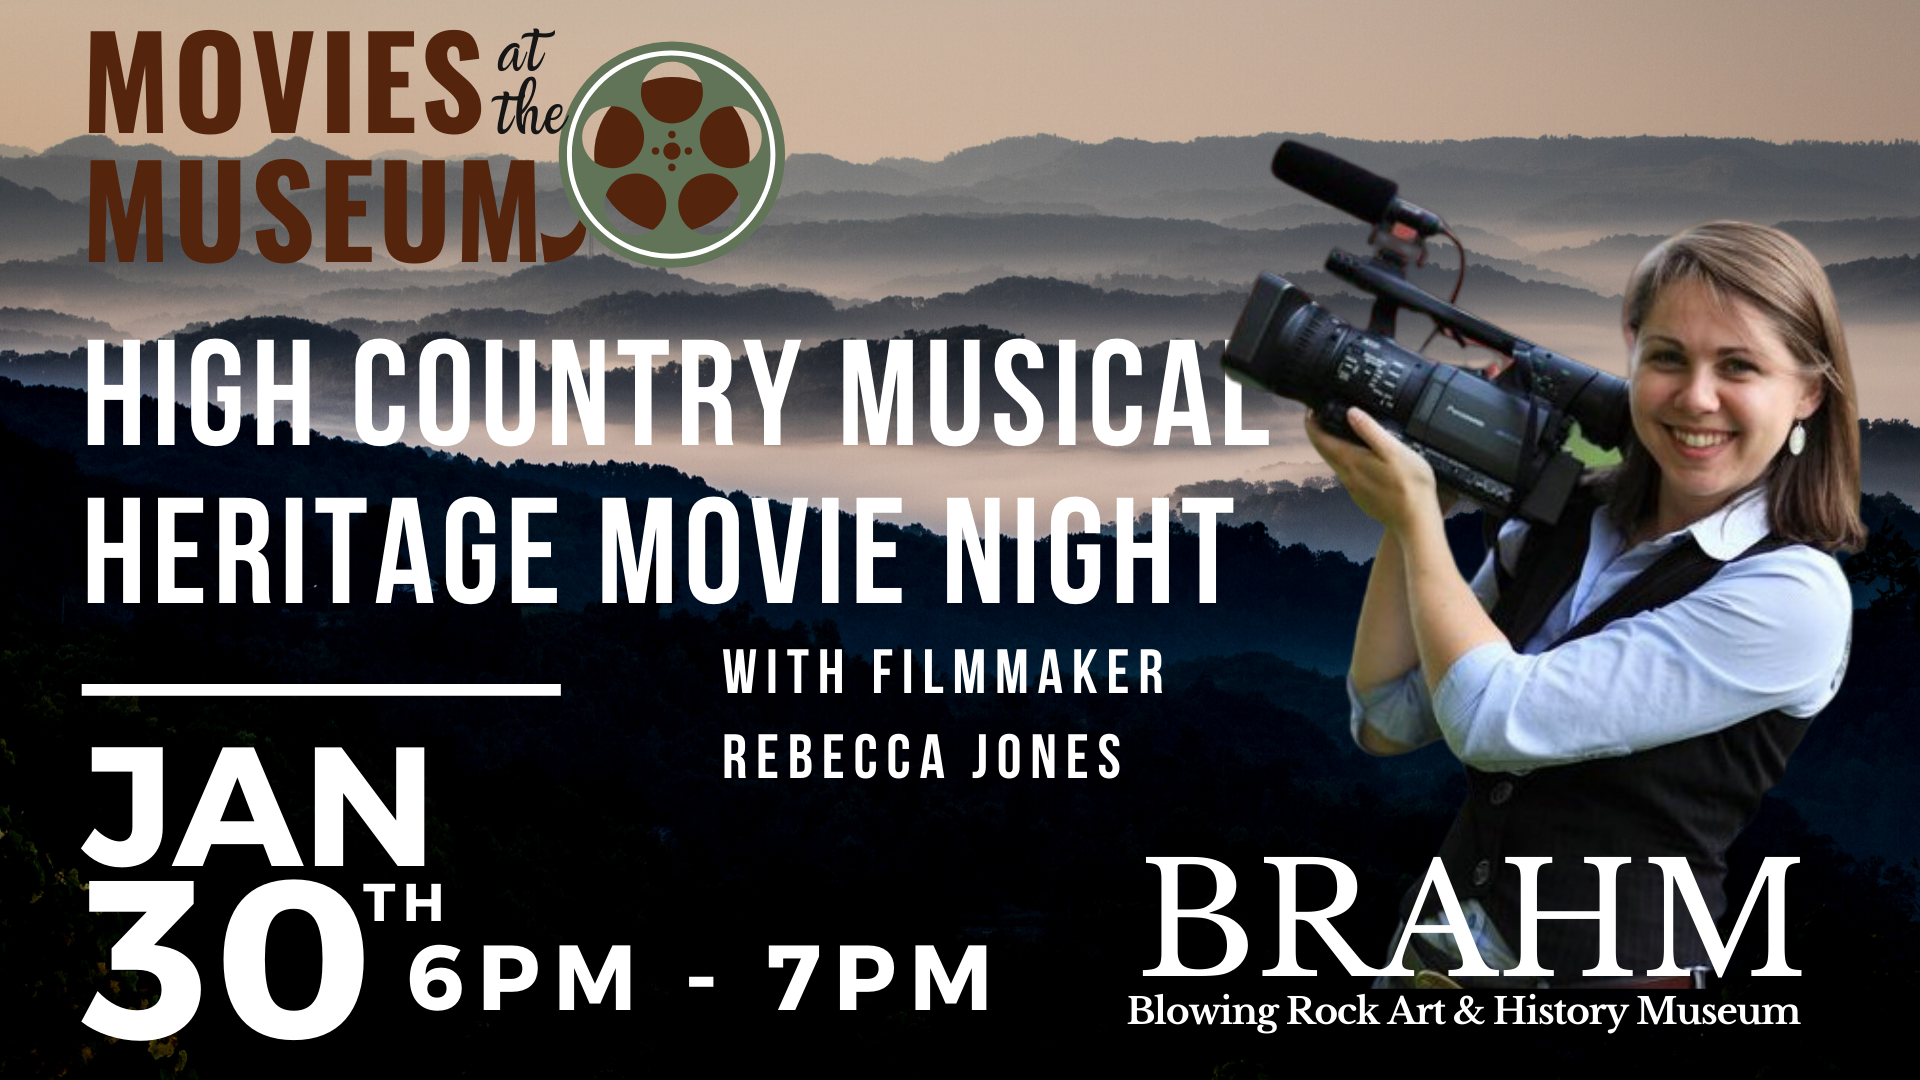 Movies at the Museum:  High Country Musical Heritage Movie Night with filmmaker Rebecca Jones